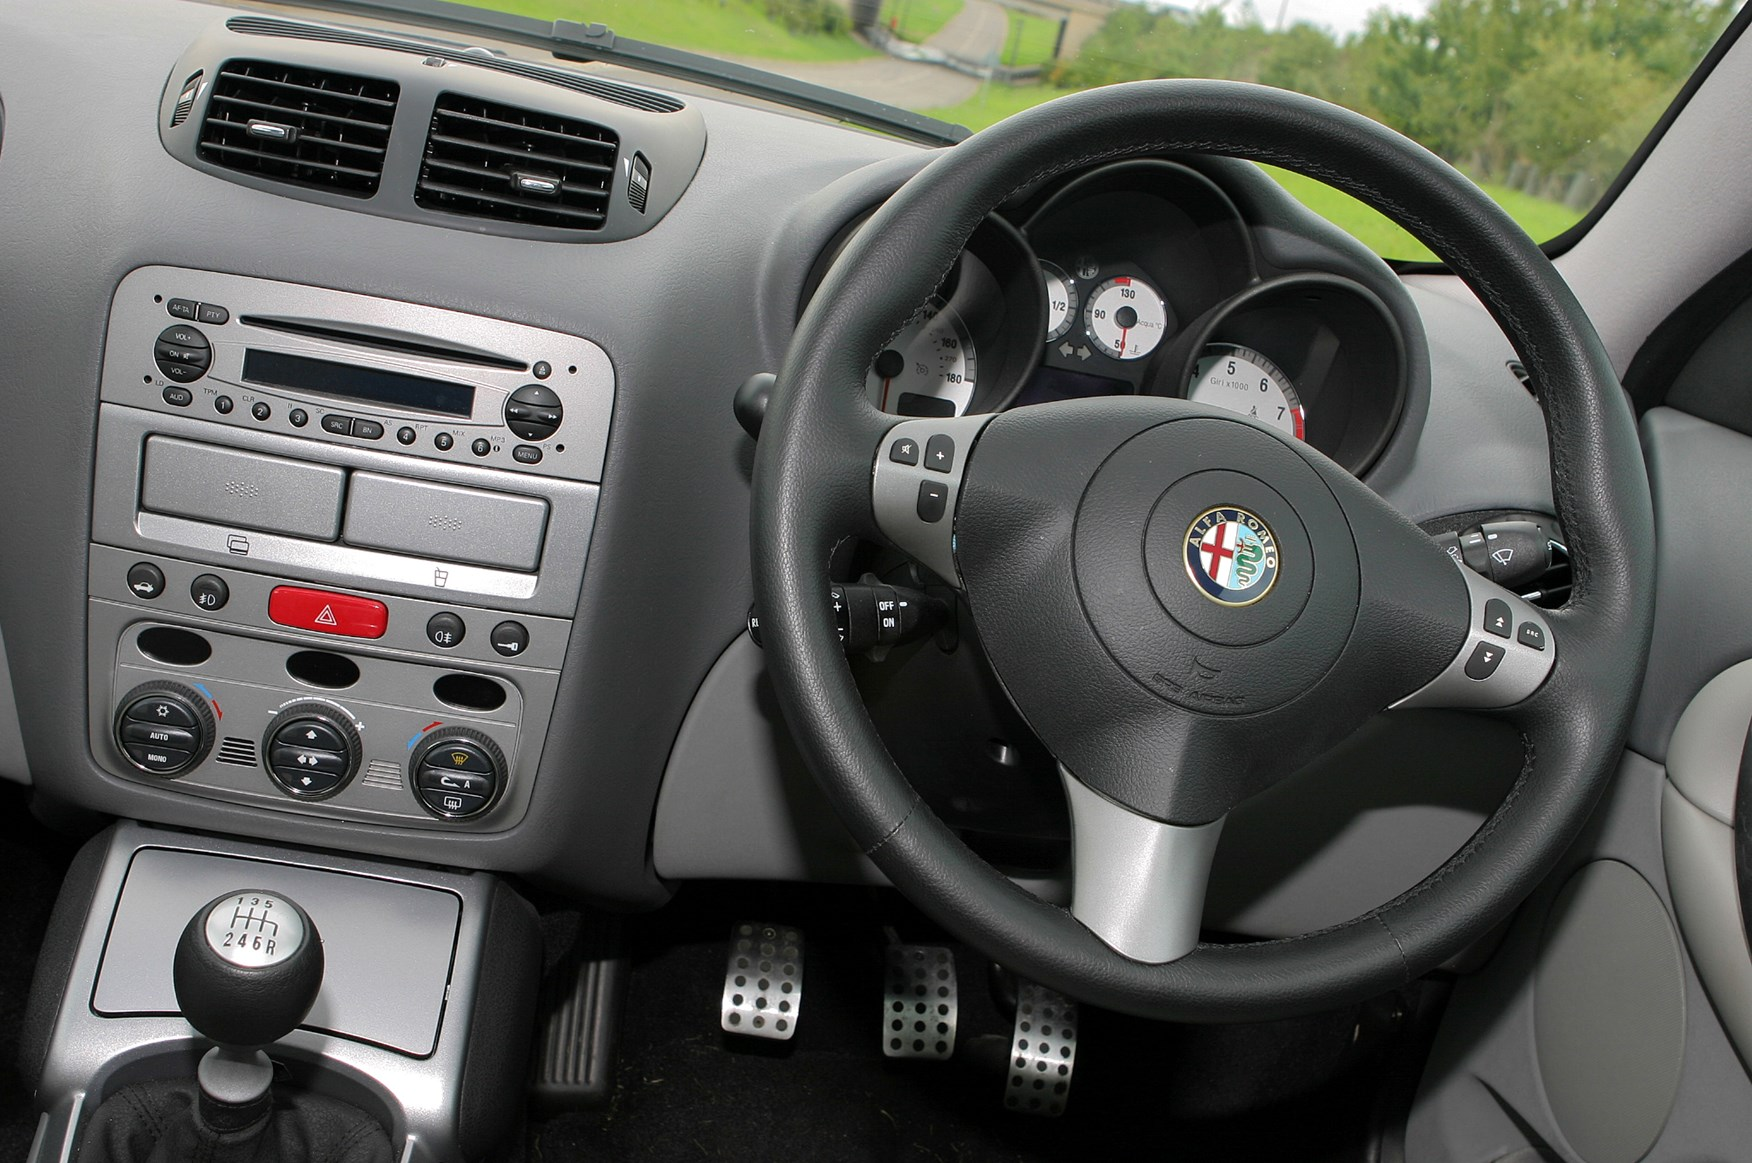 Alfa Romeo GT Coupe (2004 - 2010) Driving & Performance | Parkers